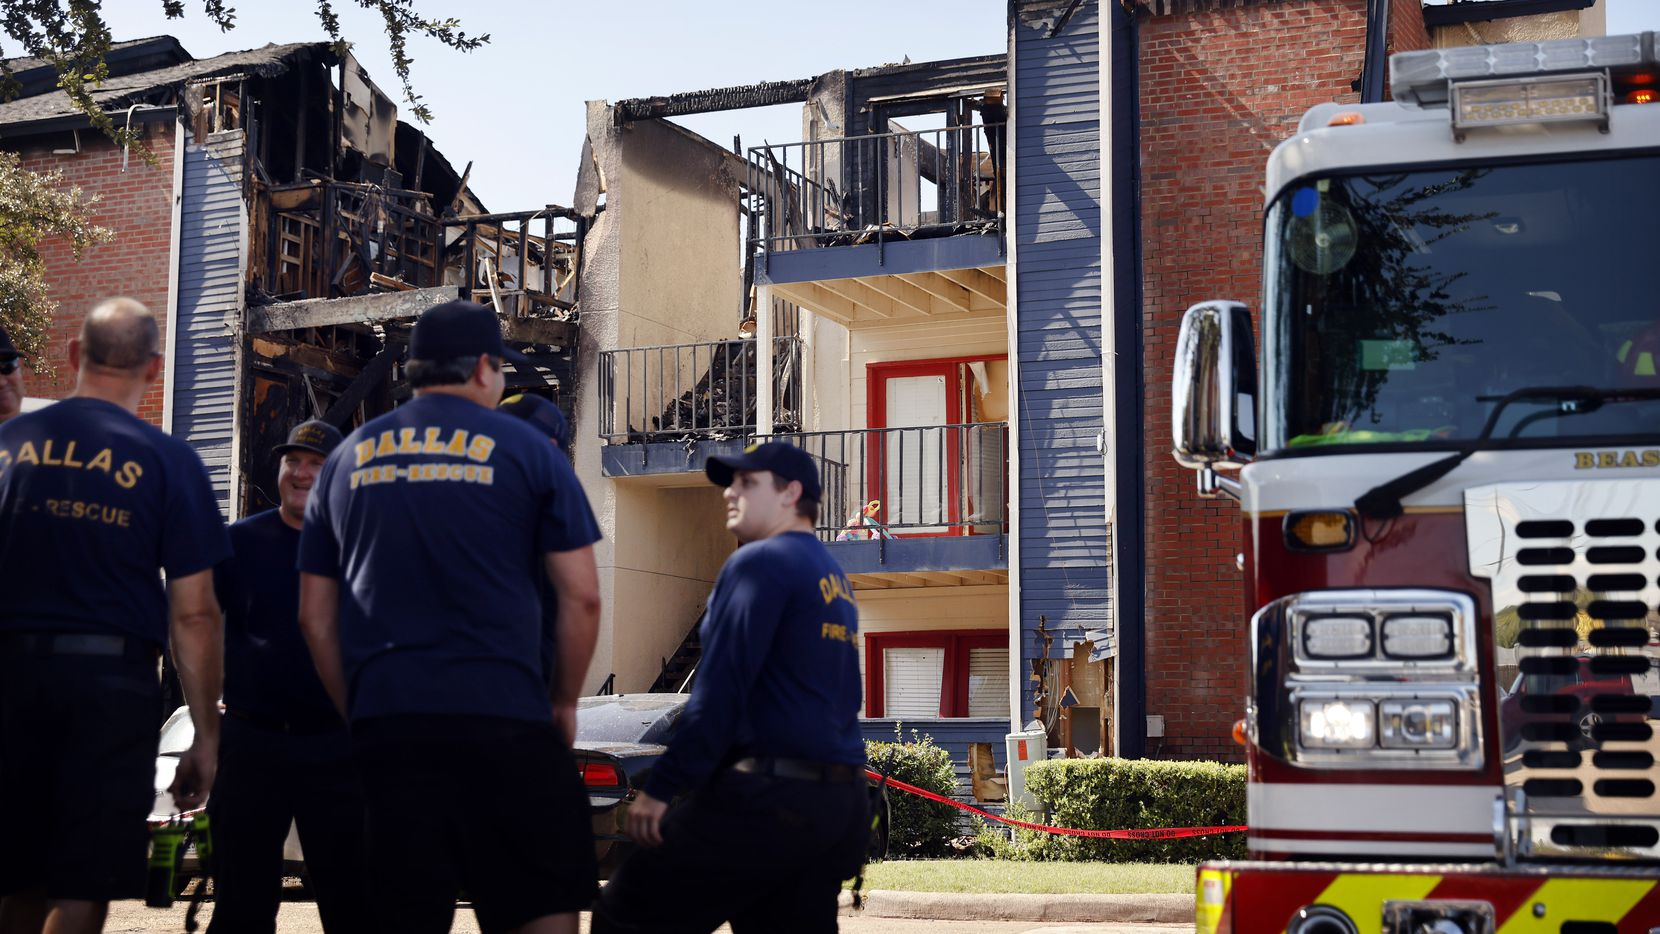 Dallas firefighters keep watch over the burned out, three-story apartment building at the Oak Meadows Apartments on Woodmeadow Parkway in Dallas Thursday, September 16, 2021. Of the 24 apartments in the building, 12 sustained damage. The rest were uninhabitable because of water and smoke, Dallas Fire-Rescue spokesperson Jason Evans said. One of the units in the building was not occupied. One resident was taken to a hospital with burns that were not believed to be life-threatening. He was hurt while he was trying to escape the building. The fire happened early Thursday morning. (Tom Fox/The Dallas Morning News)